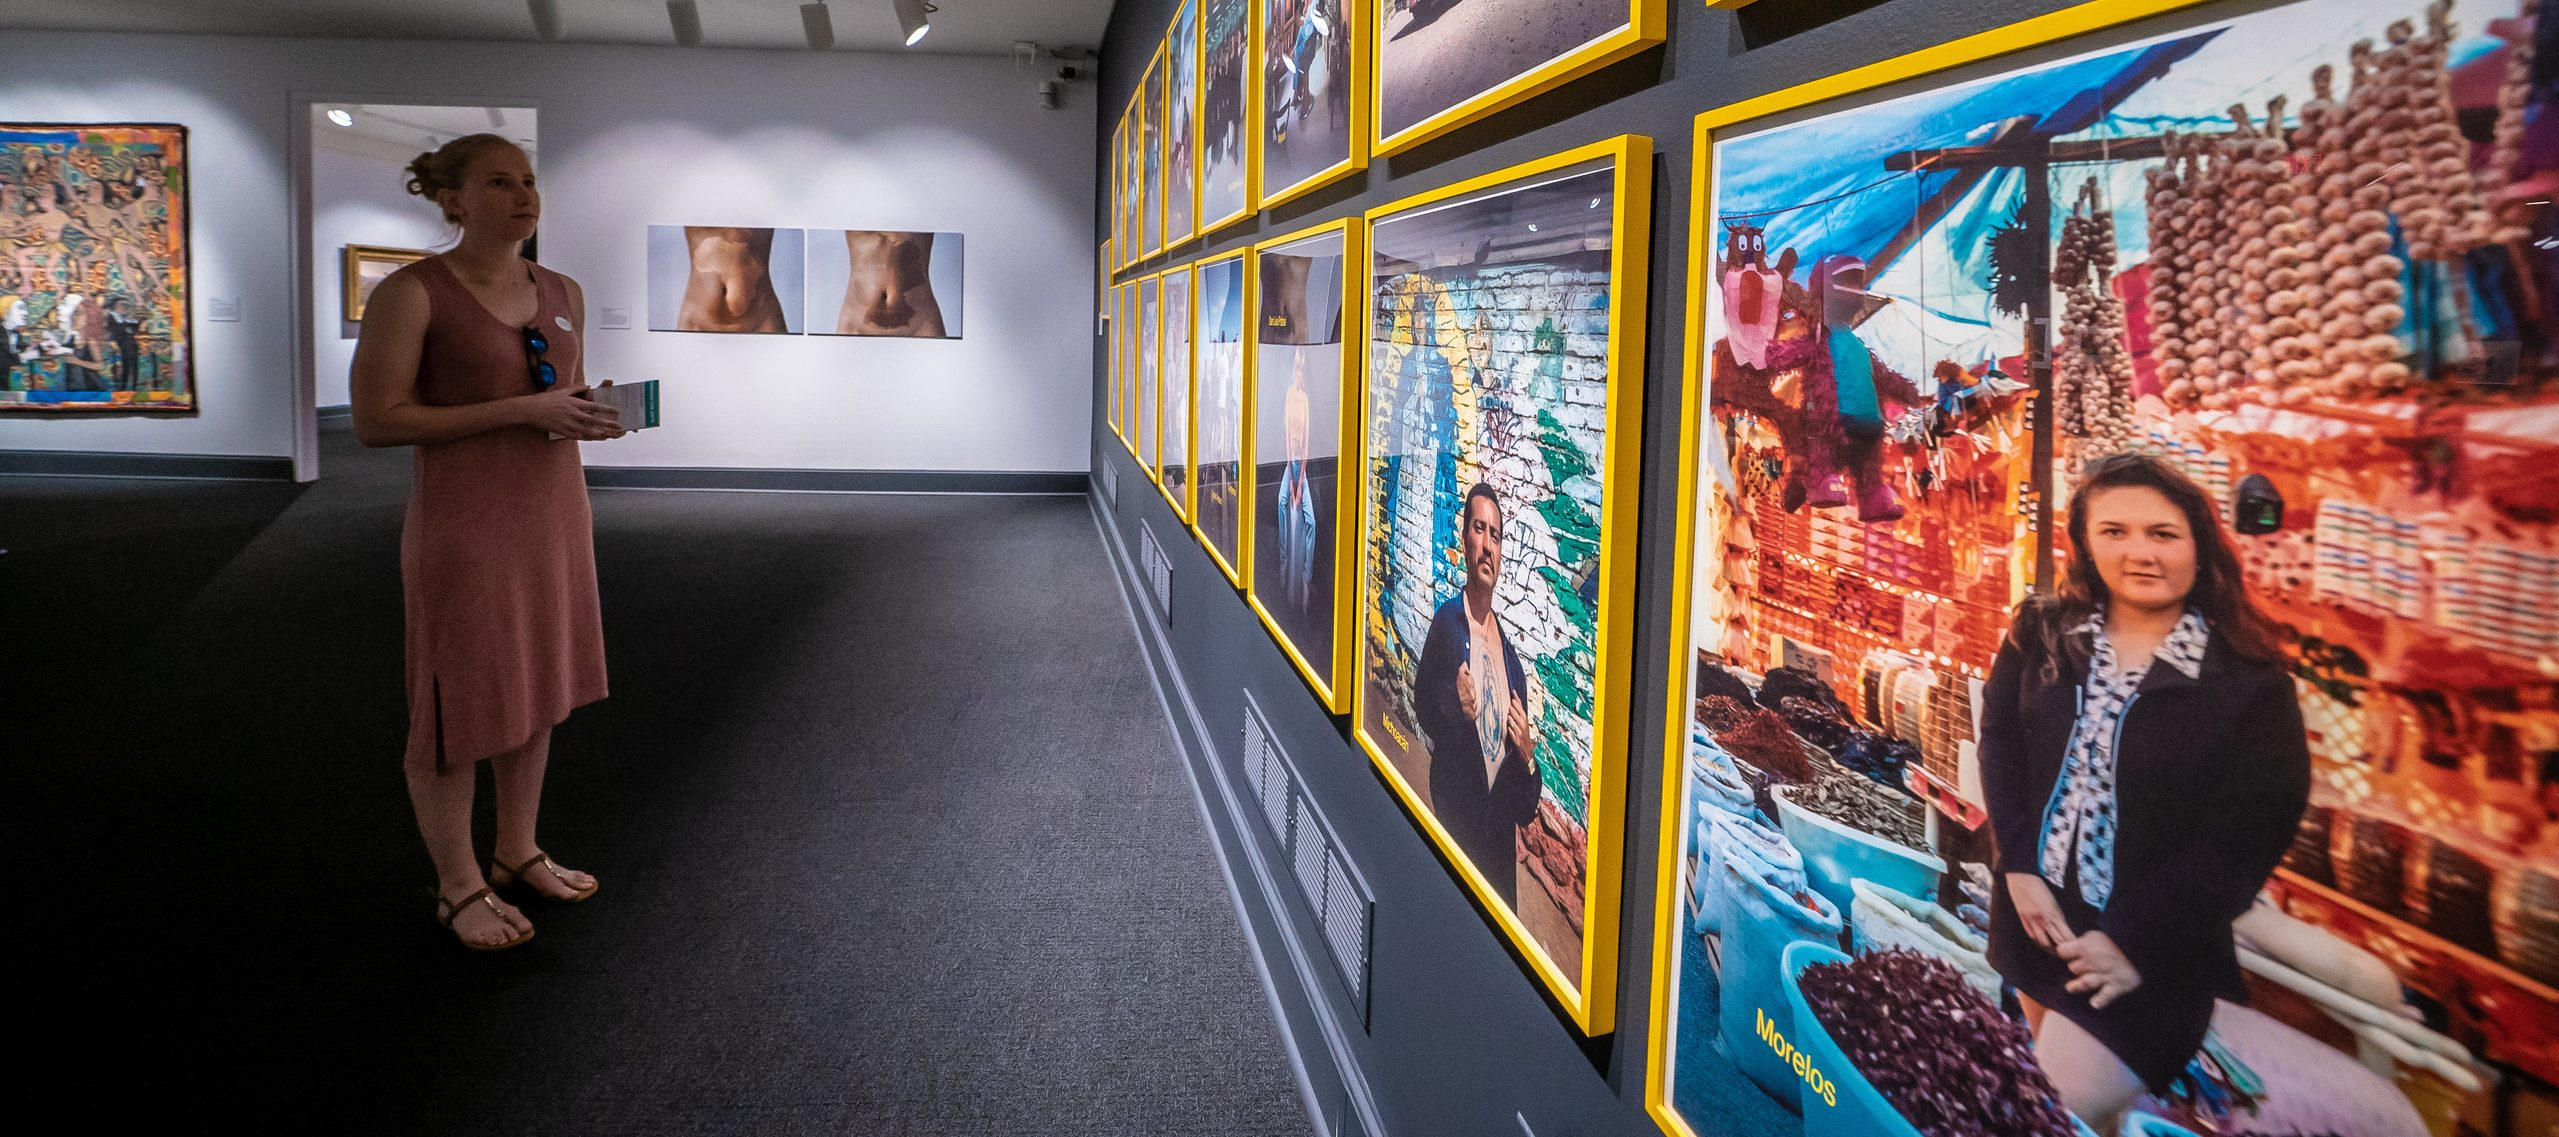 Gallery view of a person with light skin looking at a wall of photographs in bright yellow frames. Two artworks hand on the far wall.